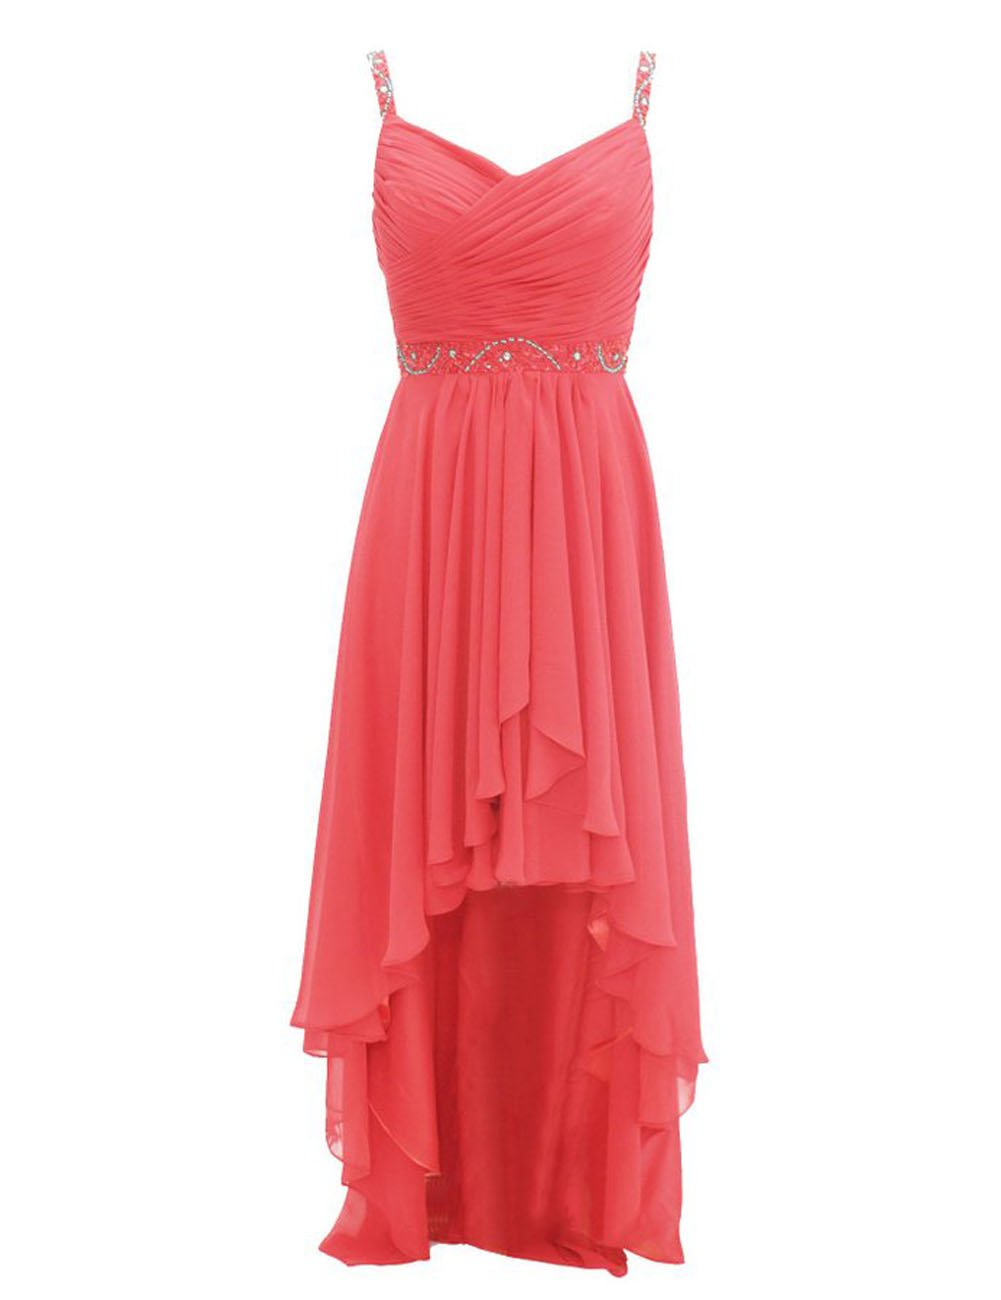 Available at Amazon: Bridesmaid Dresses High Low Prom Dress Formal Evening Gowns Beads Bridesmaid Dress